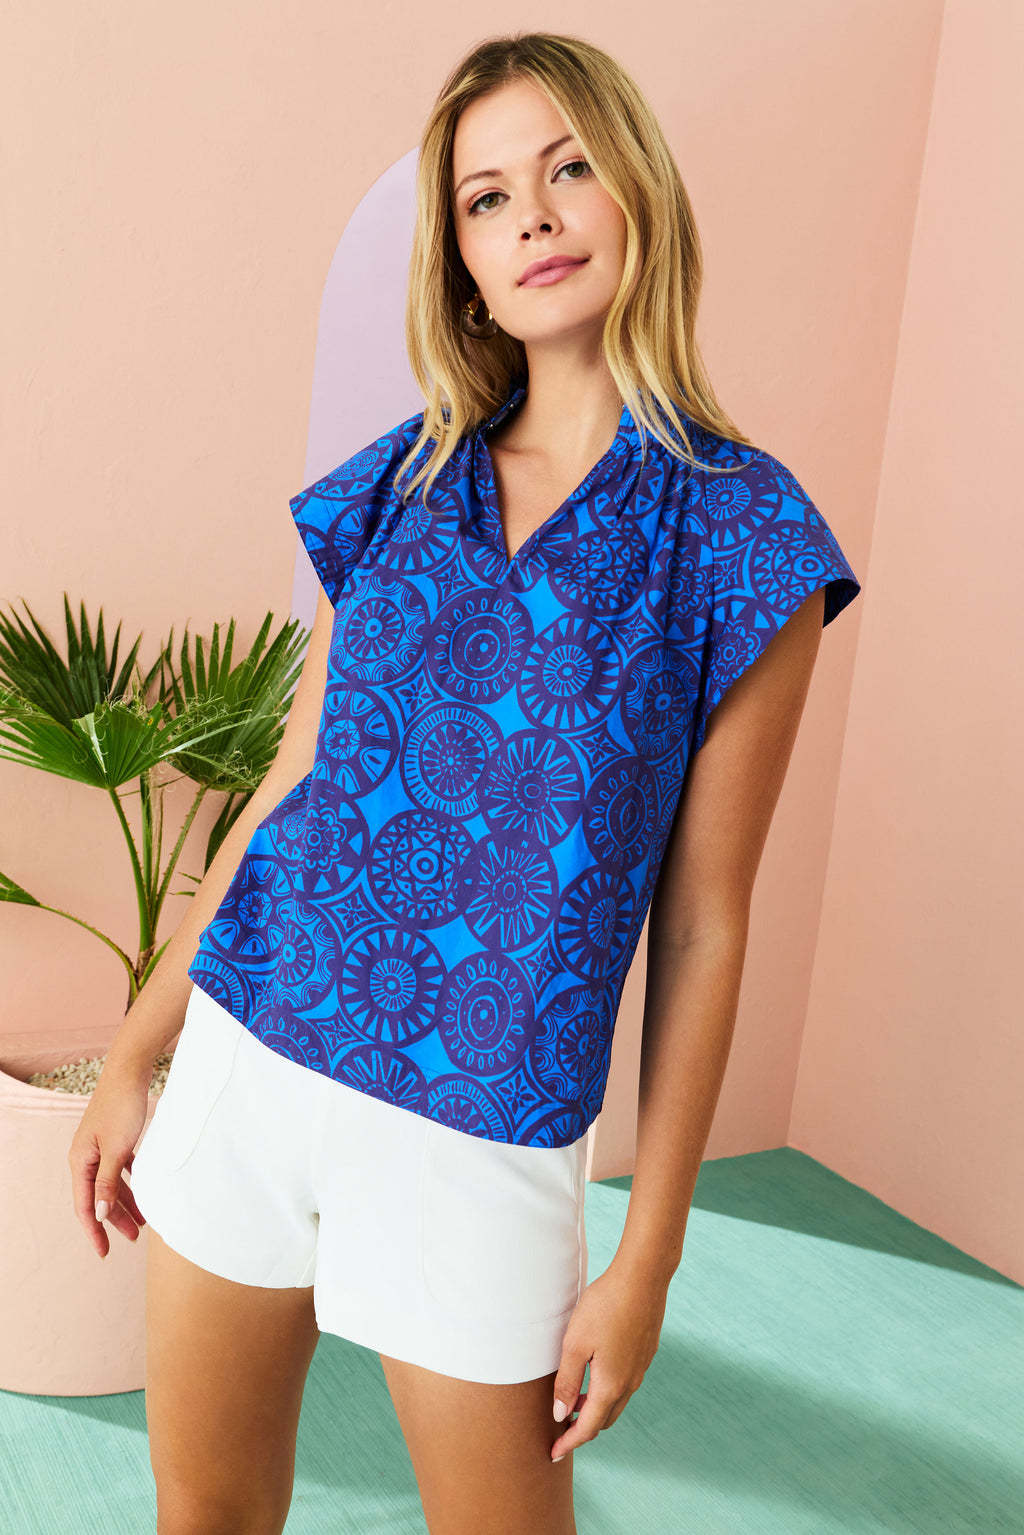 model in ombre colored top of orange, pink and blue with white tailored shorts